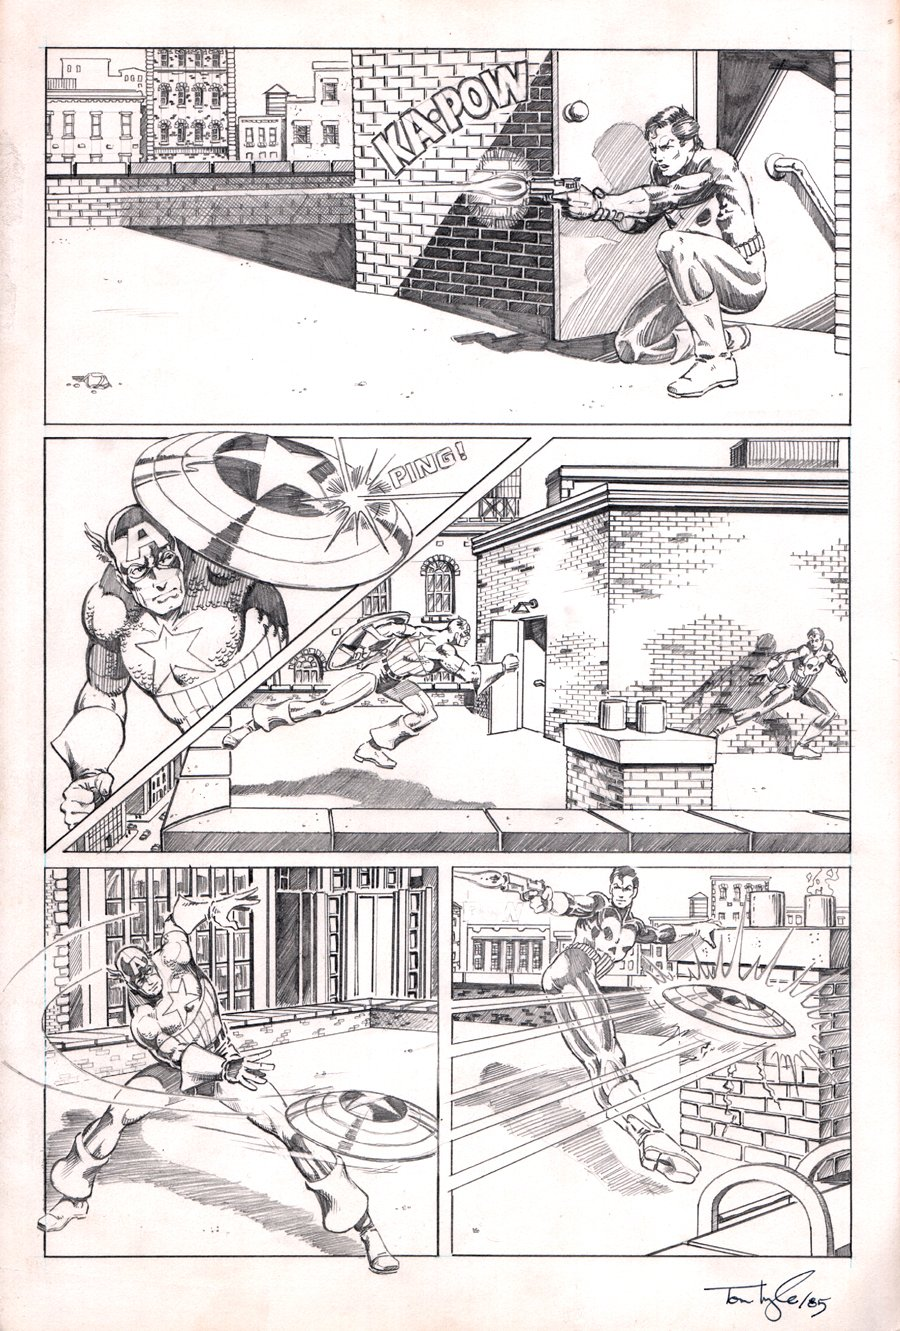 Captain America Vs The Punisher Unused Battle Page (1985)